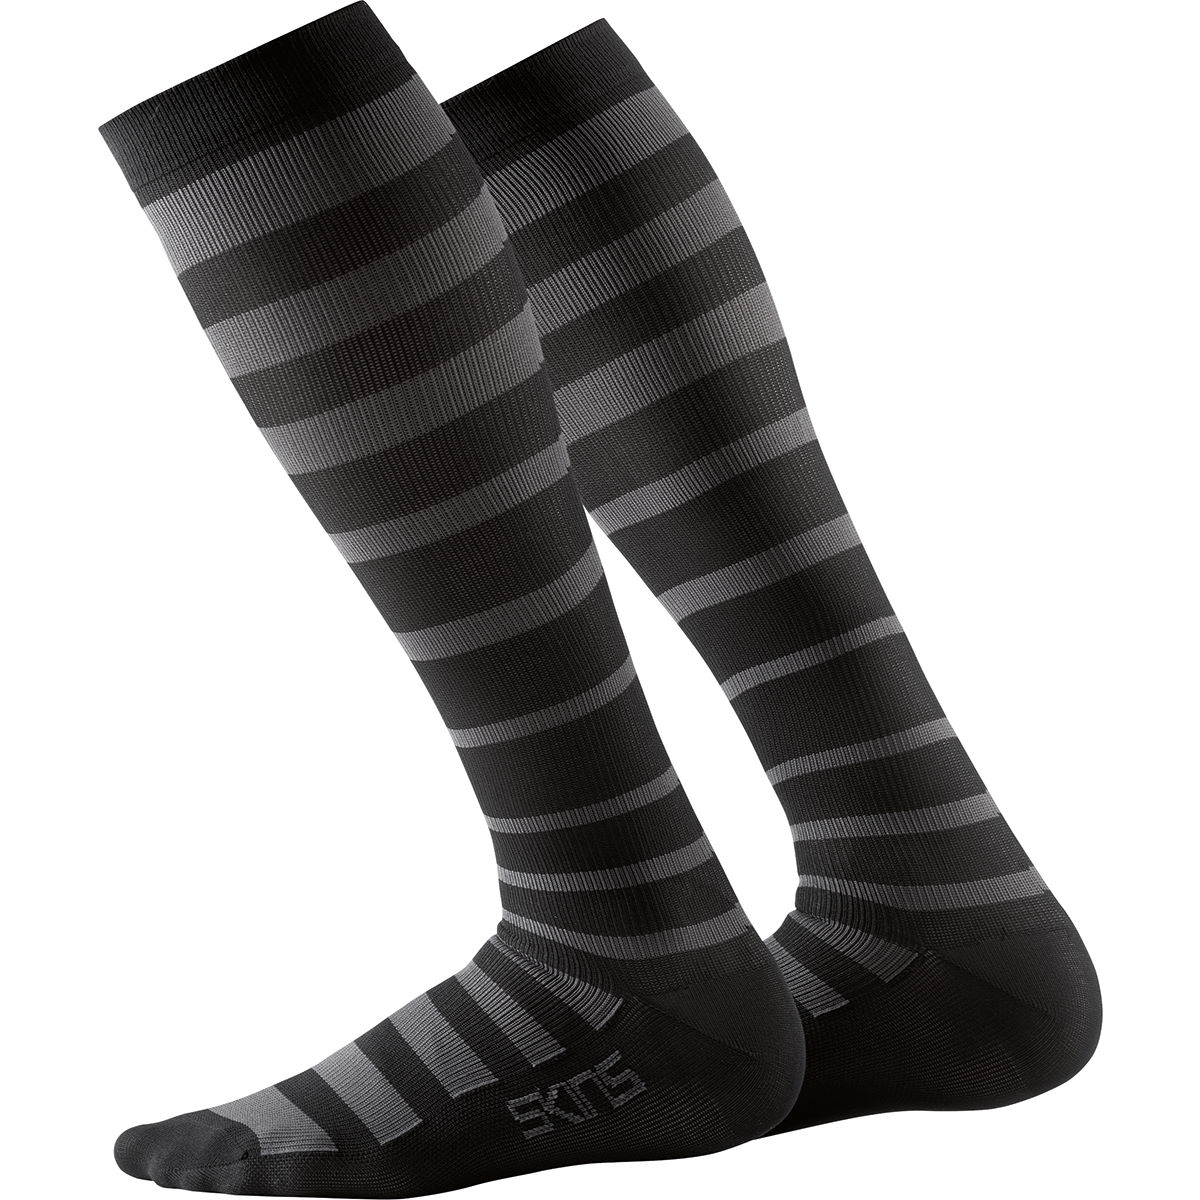 SKINS Essentials Recovery Compression Sock - S Black